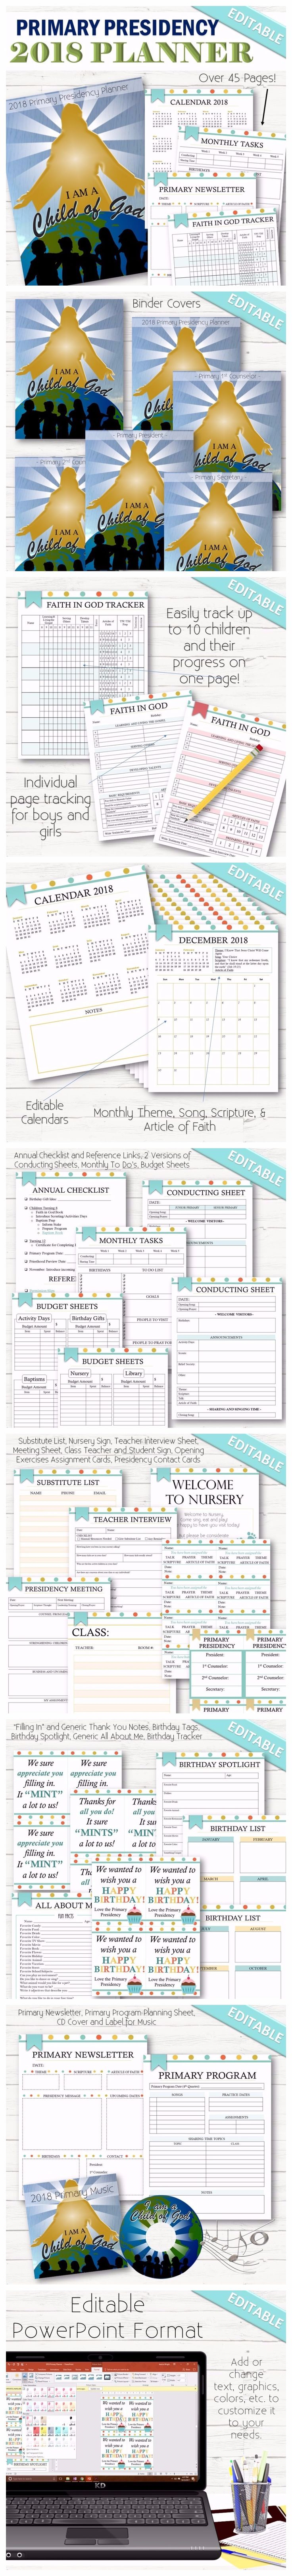 """An editable version of the Primary Presidency Planner with the 2018 curriculum. A cute and simple way to make managing all the responsibilities and tasks in the LDS Primary Program easy. This all-in-one planner includes monthly songs, themes, calendars, task lists and more! This comes in a PDF format AND an editable PowerPoint format where you can change the graphics, fonts, sizing, headers, titles, content, etc! Formatted to fit a 8.5""""x11"""" page. Planner Includes 47 Pages!"""